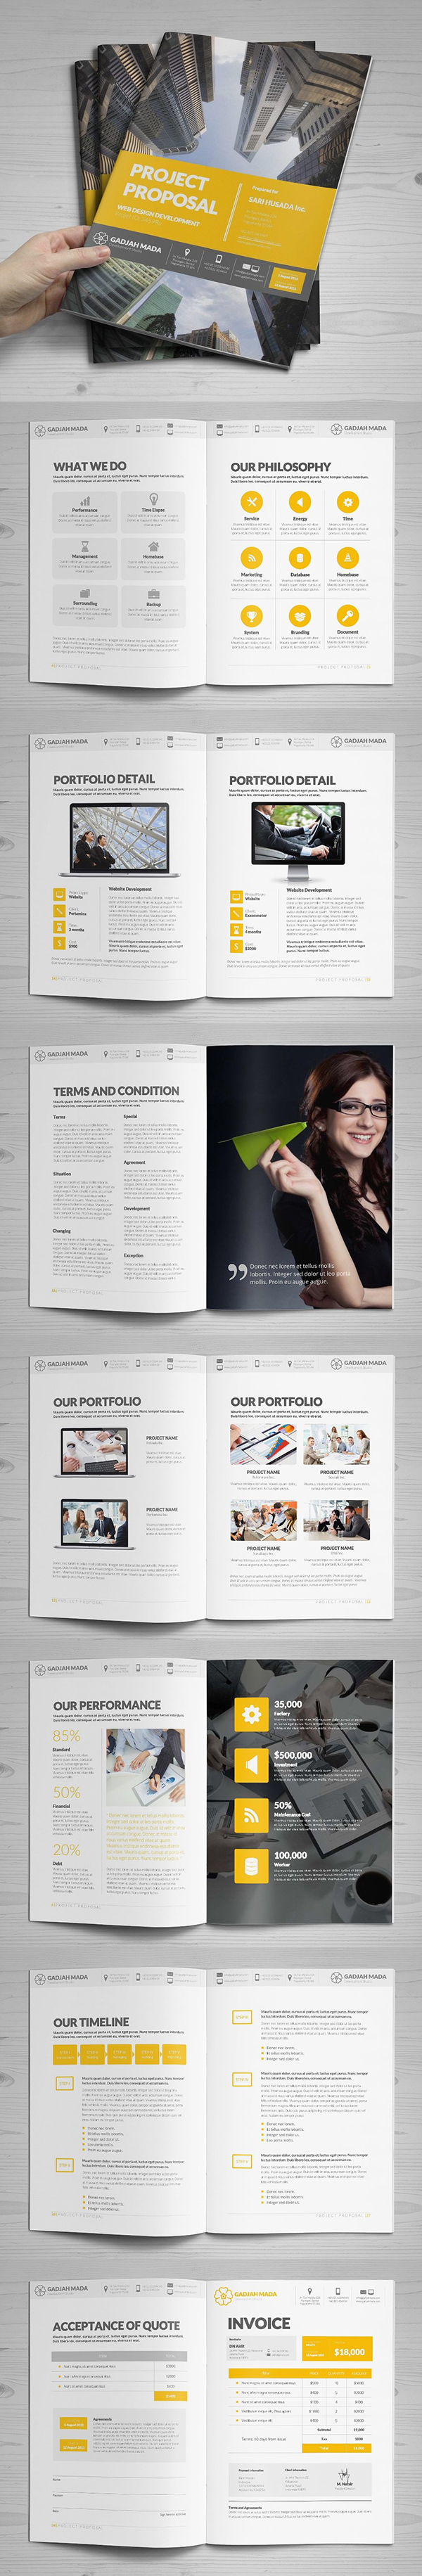 Business proposal templates design graphic design junction professional business proposal templates design 14 wajeb